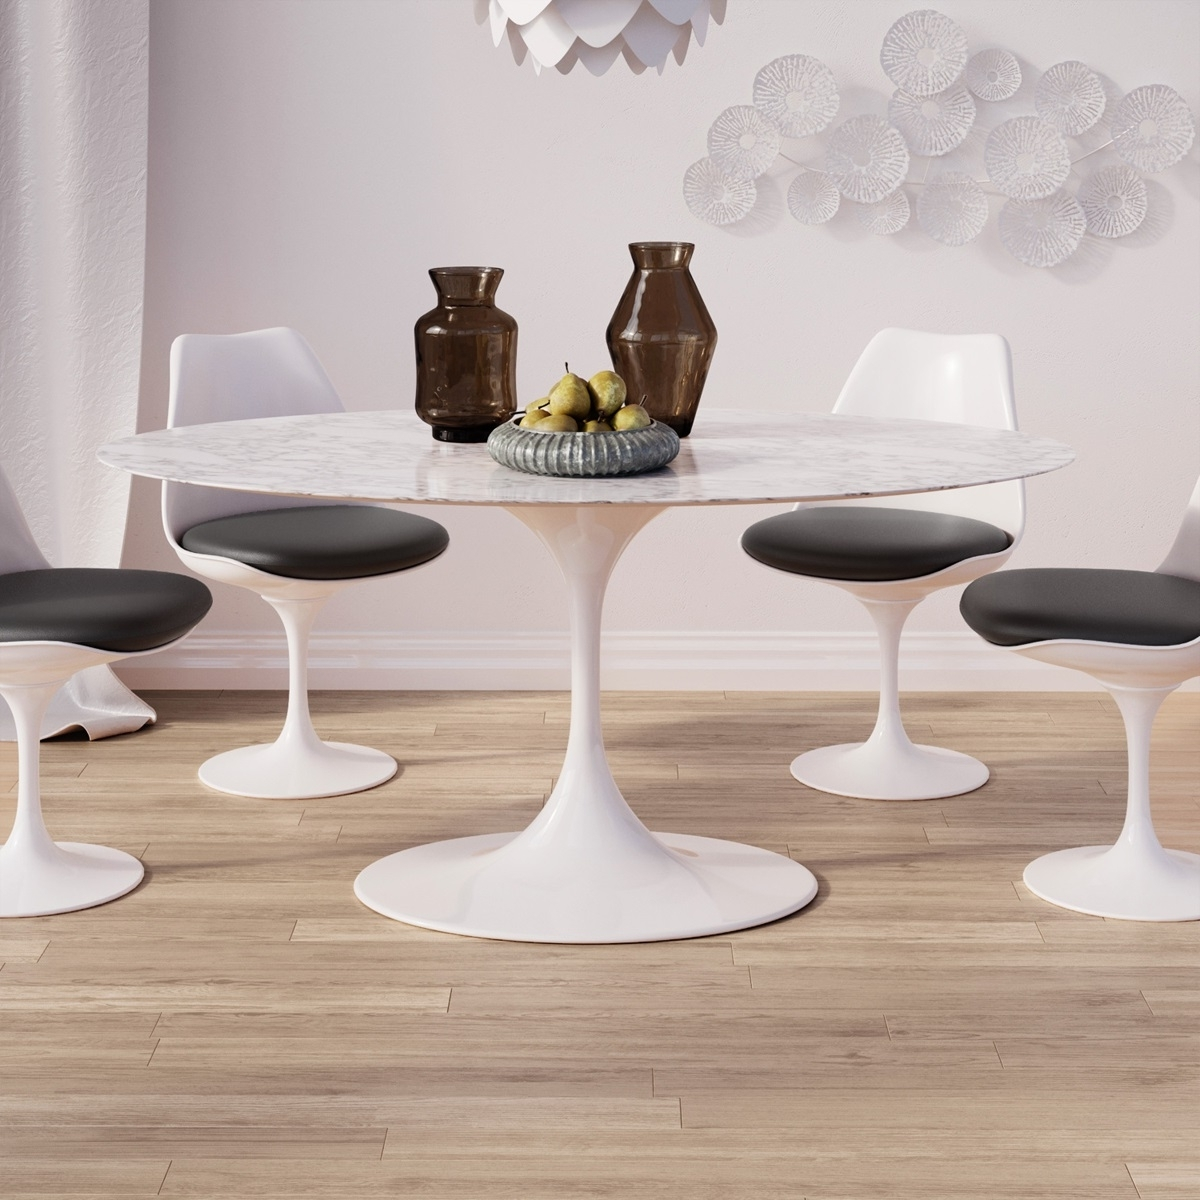 Well Known Oval Dining Tables For Sale Throughout Saarinen Tulip Oval Marble Dining Table (View 25 of 25)